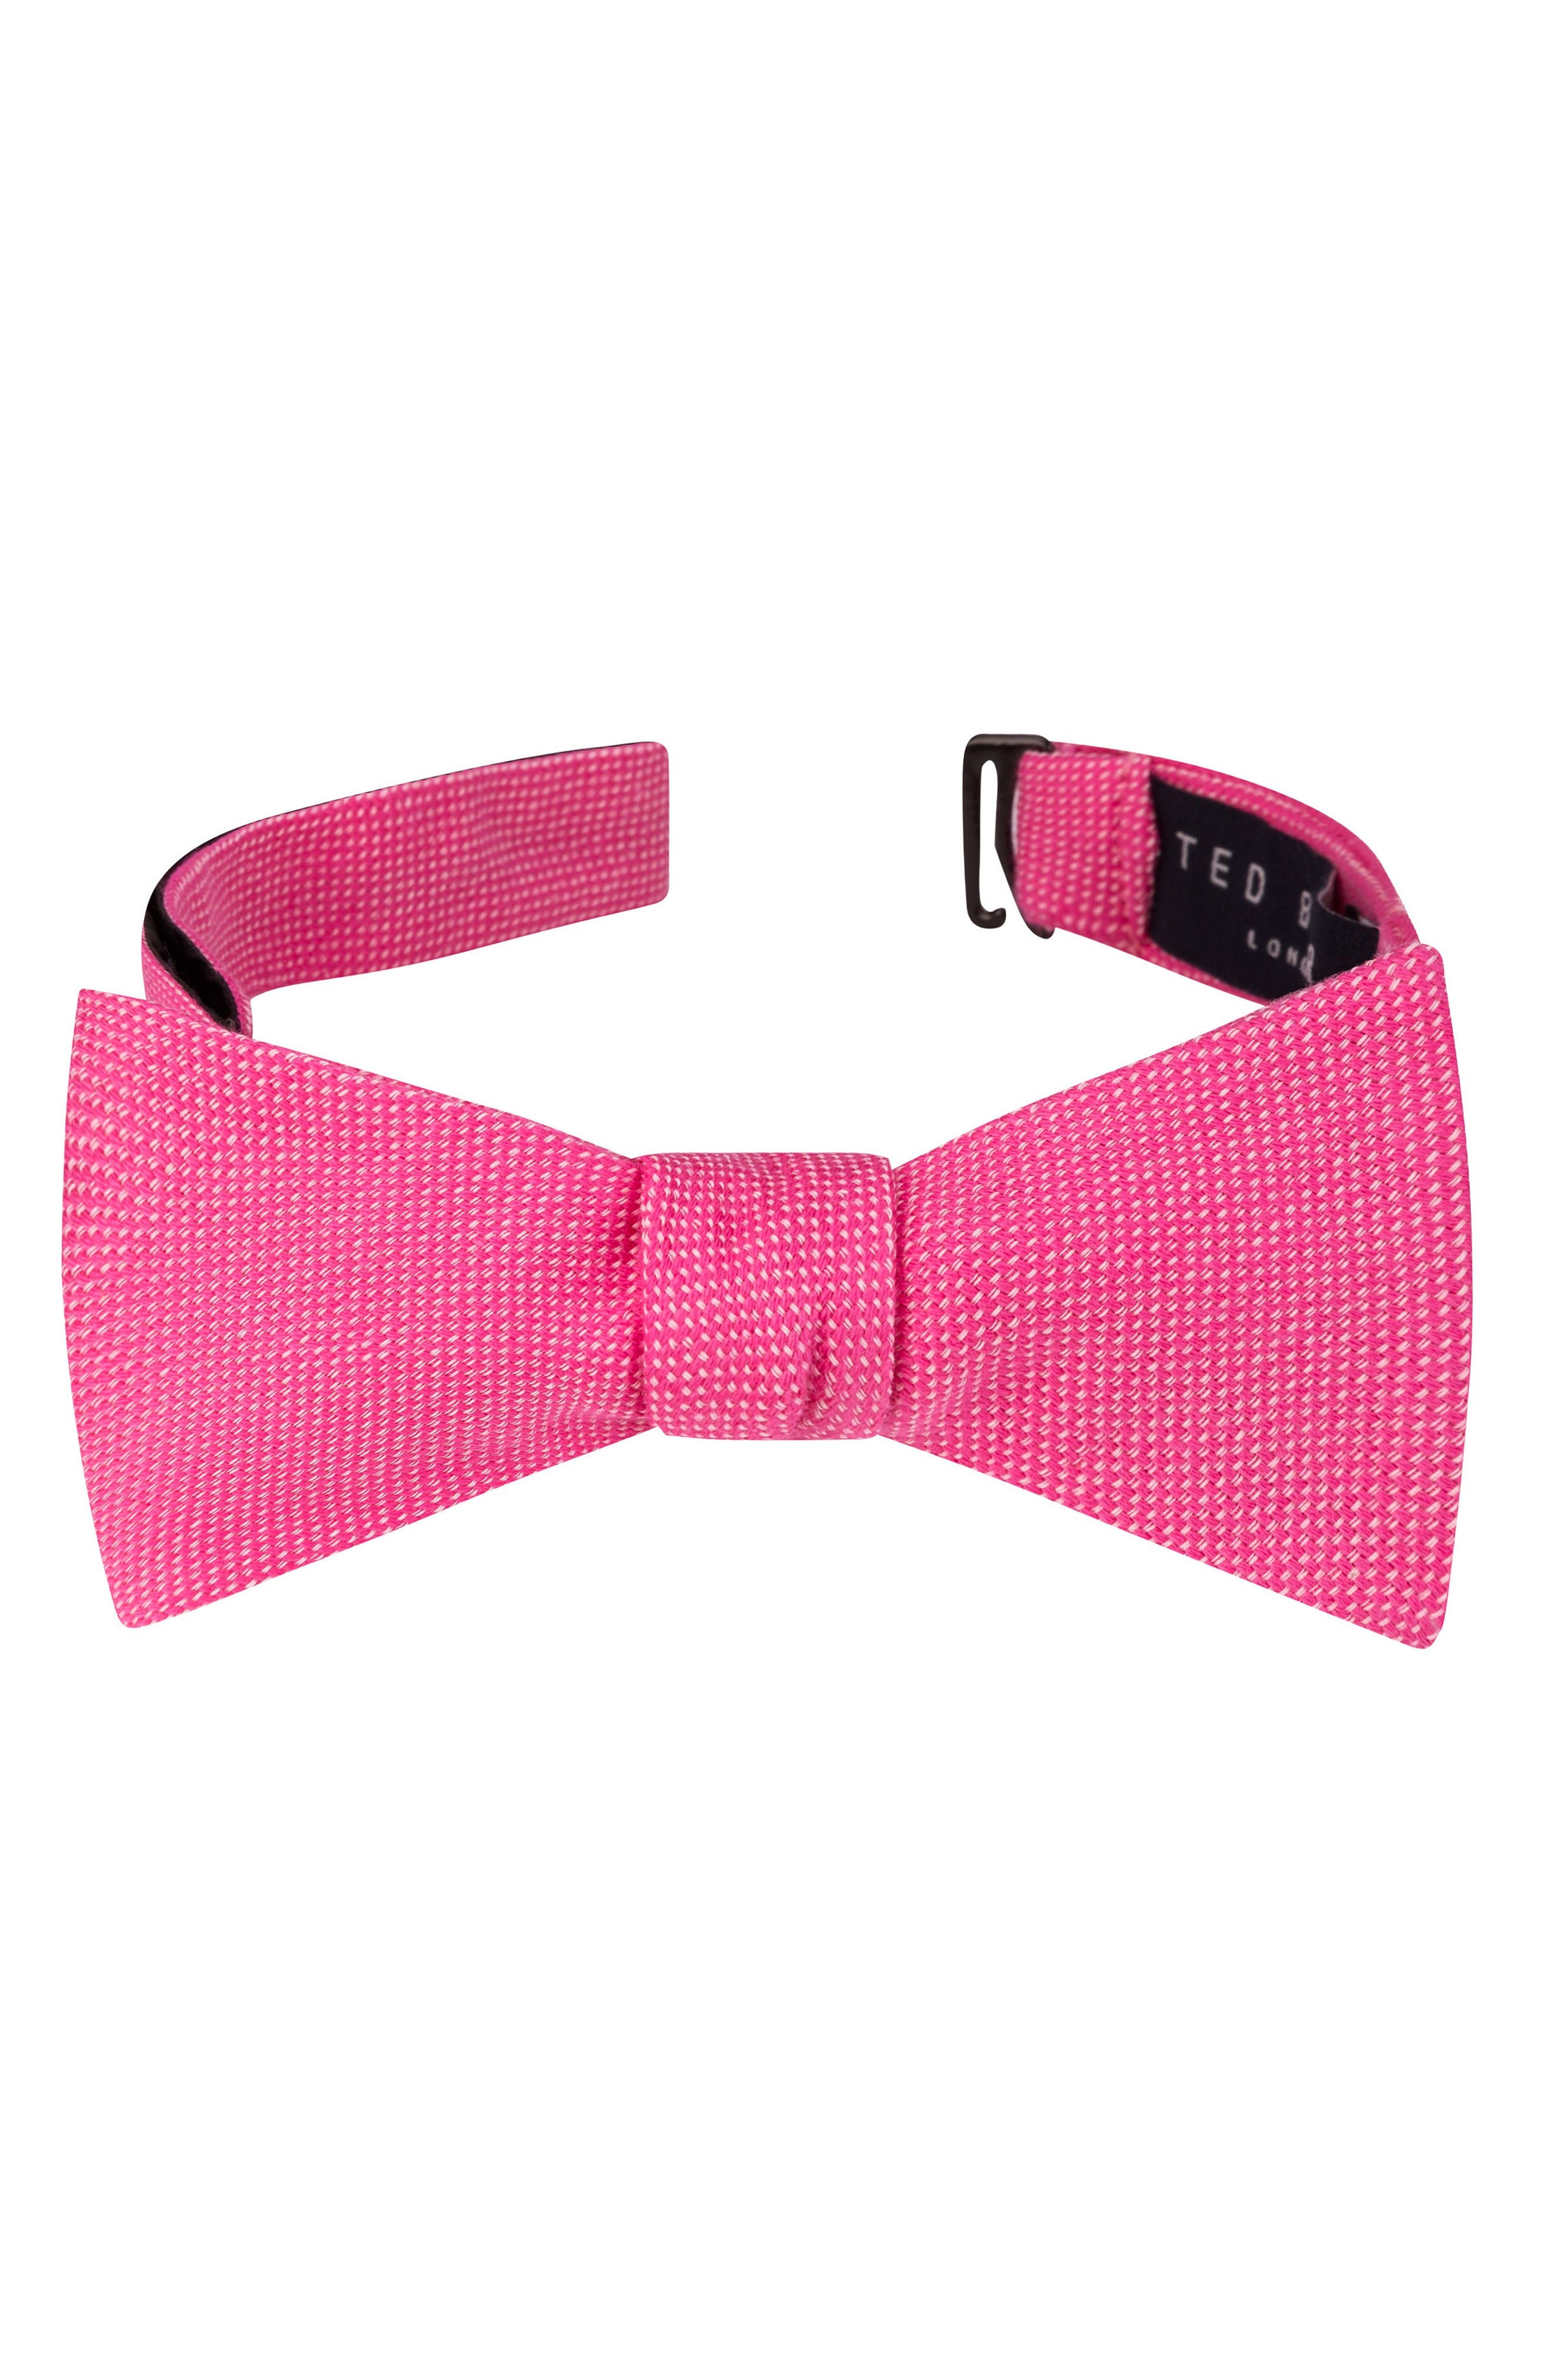 Ted Baker London Solid Cotton Bow Tie